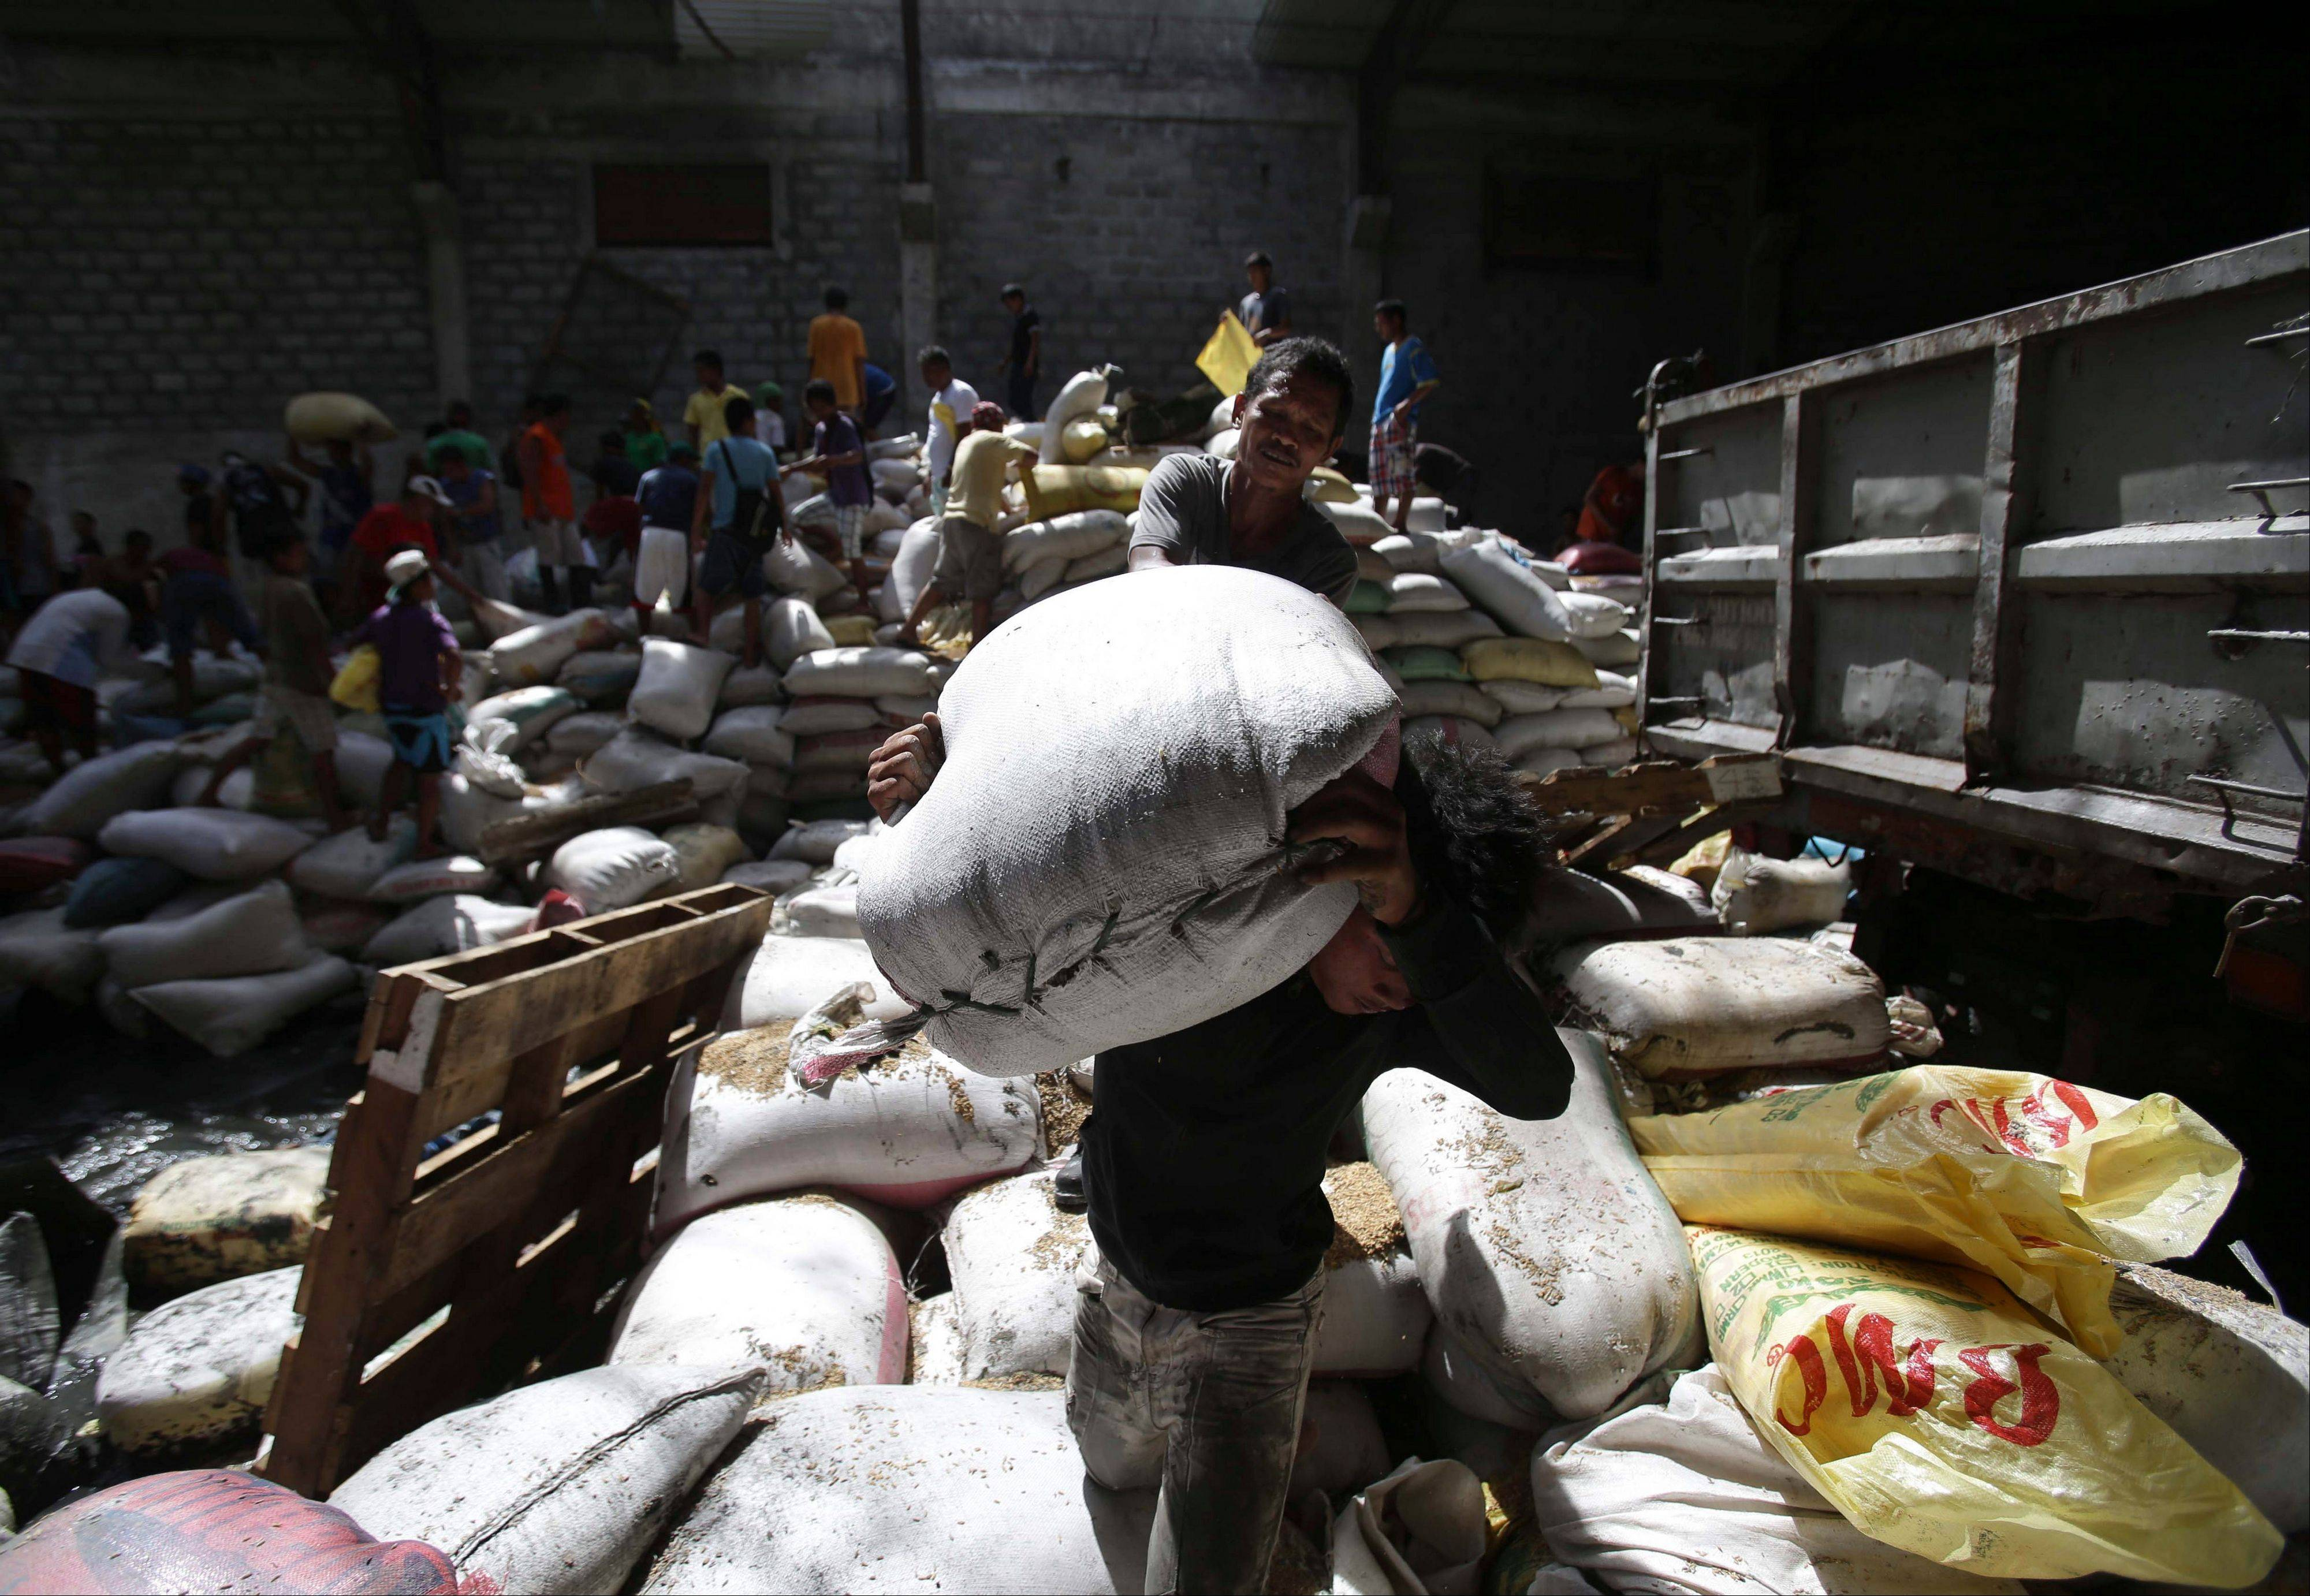 Survivors carry bags of rice from a warehouse which they stormed due to shortage of food at typhoon-ravaged Tacloban city, Leyte province central Philippines on Monday.